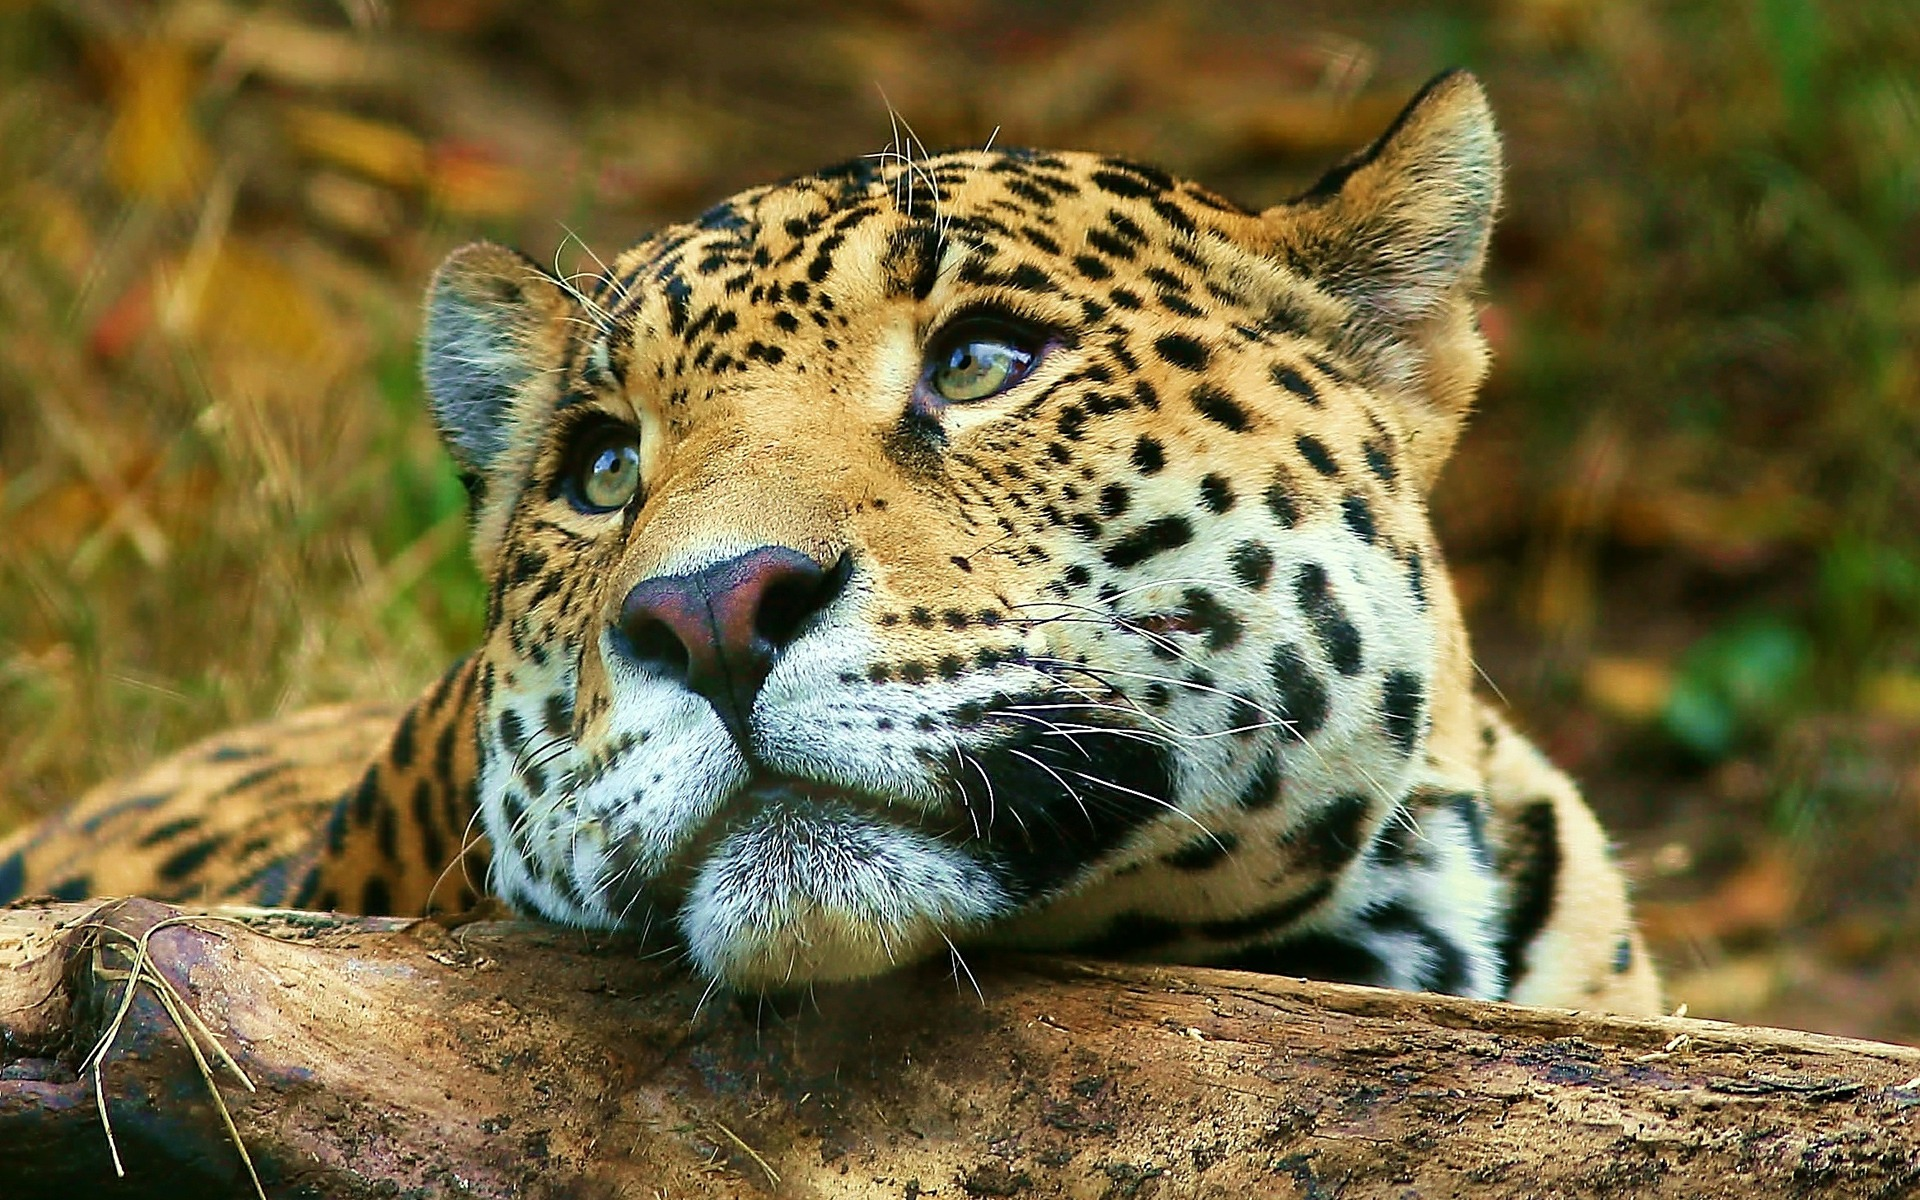 All Animals Wallpaper: Leopard Daydreaming Wallpaper Big Cats Animals Wallpapers